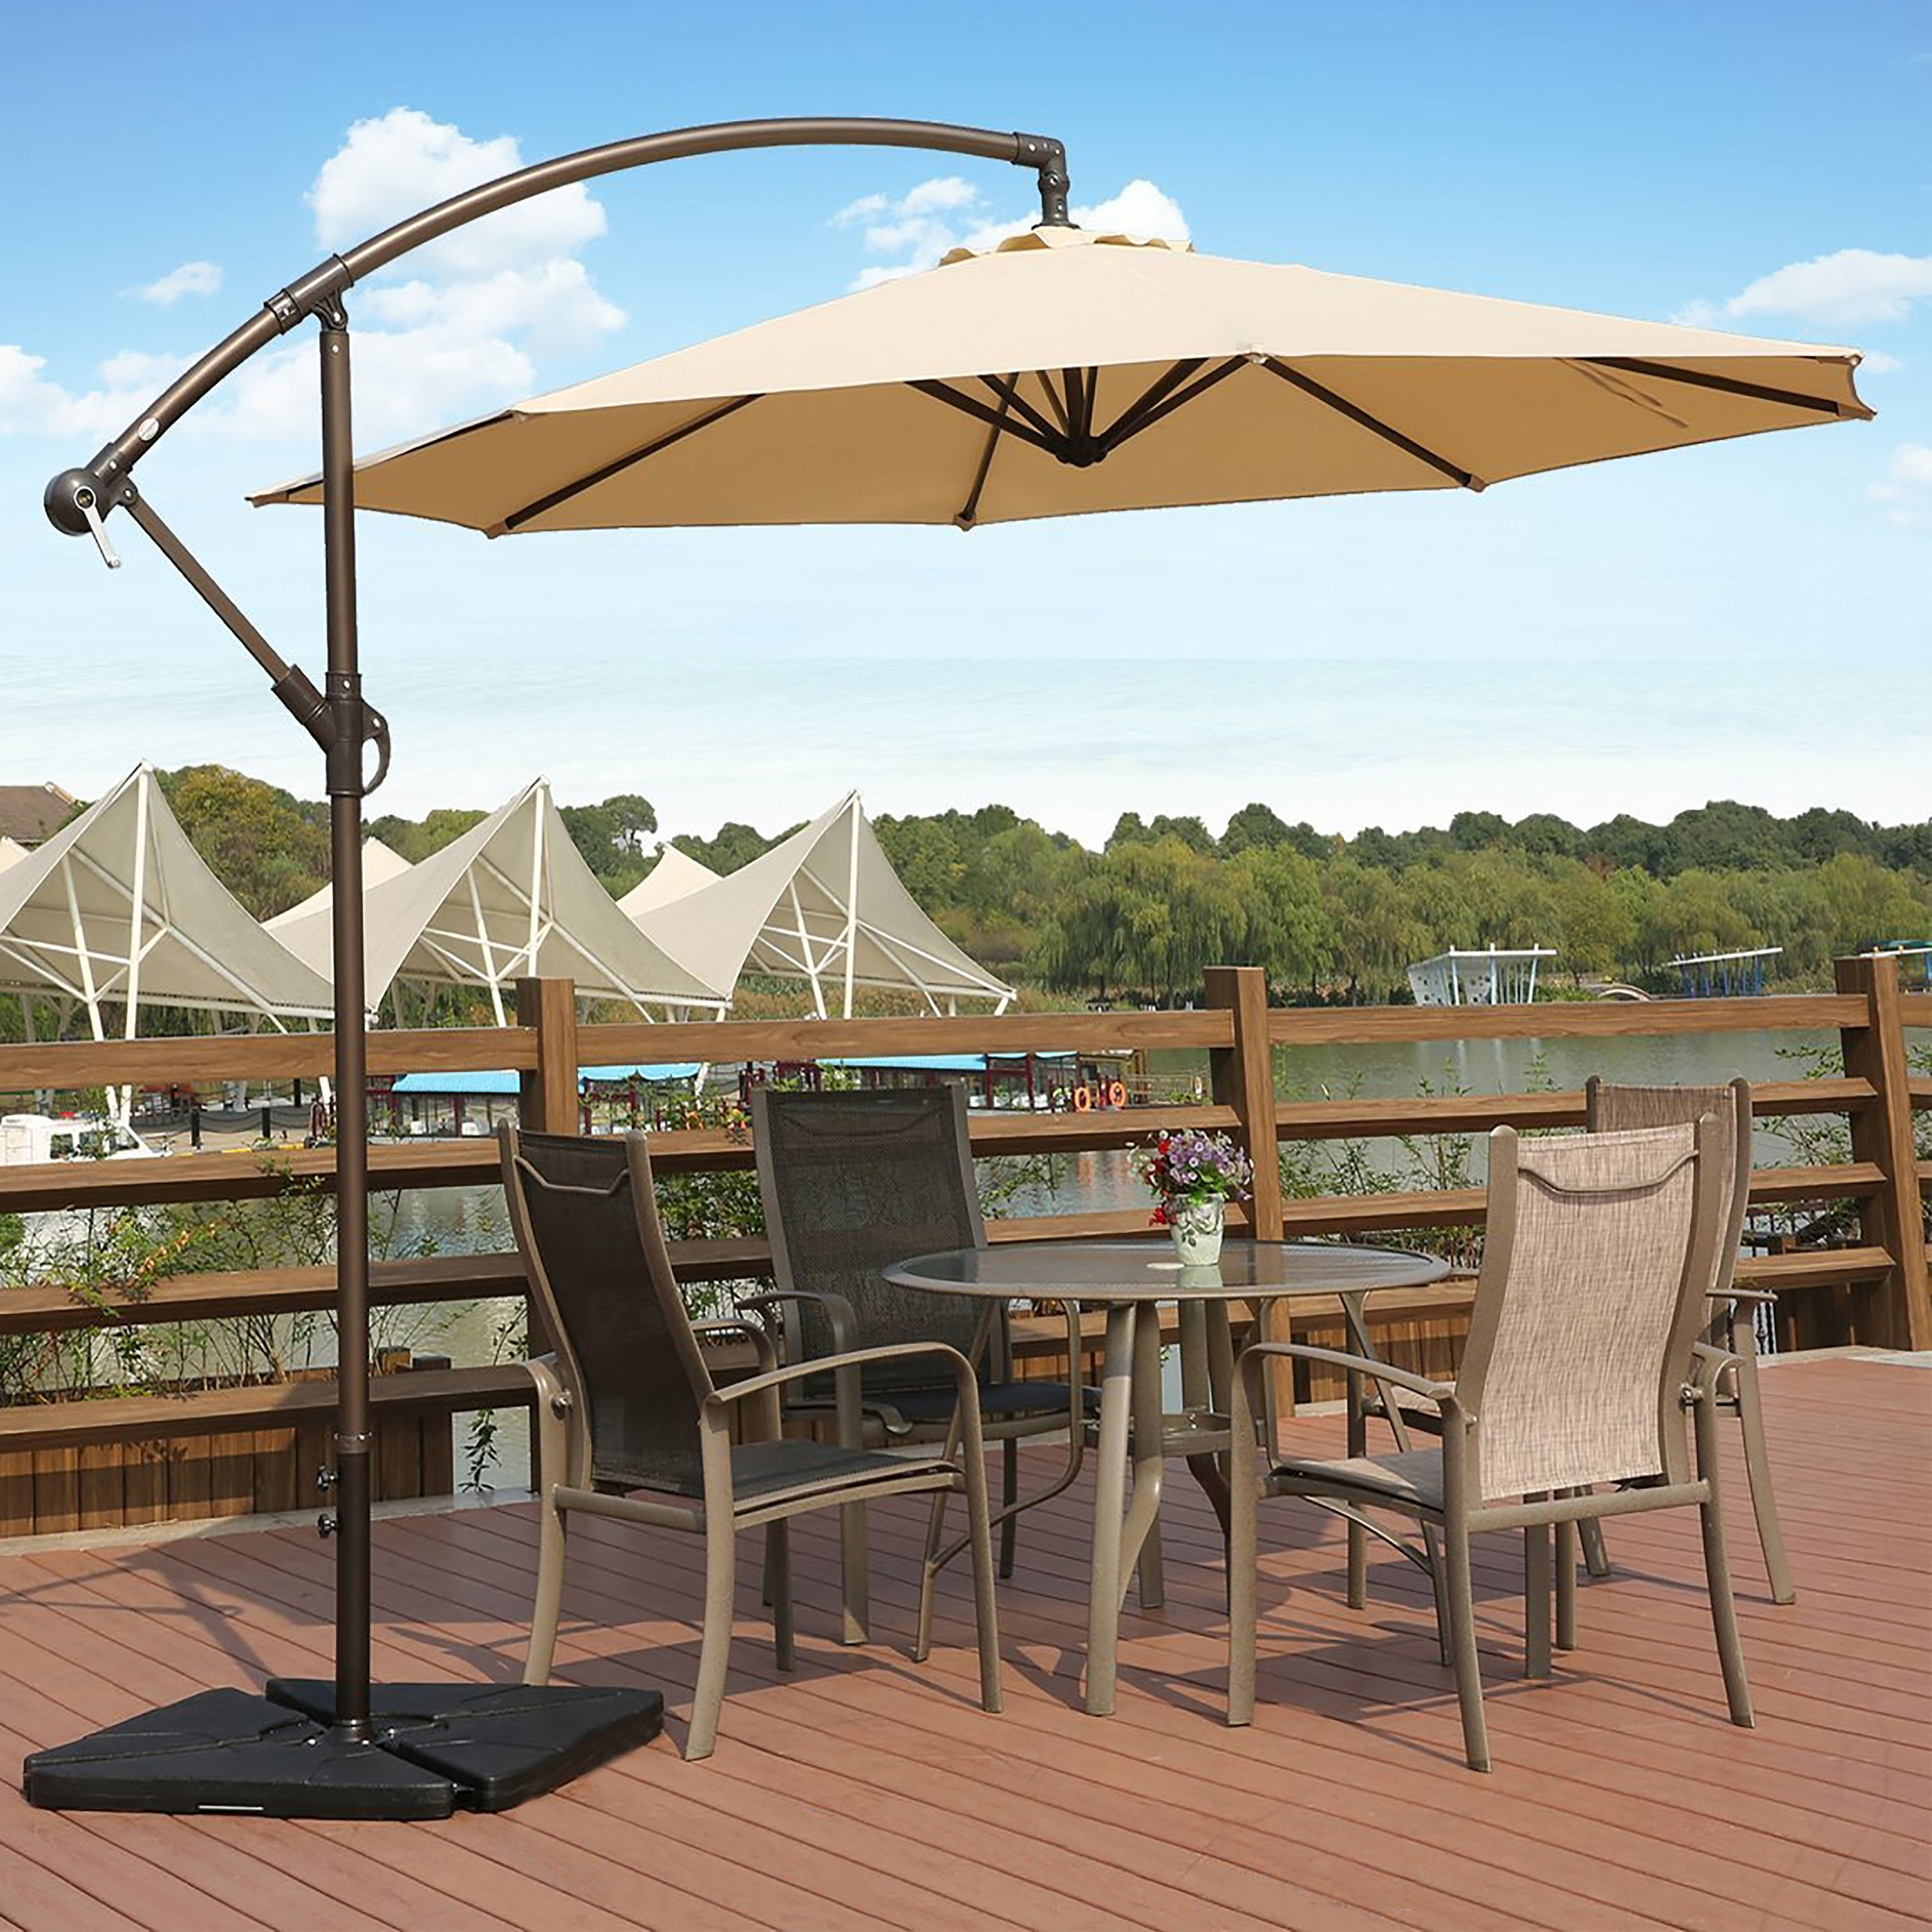 Charmant Shop Weller 10ft Offset Canopy Umbrella U0026 4 PC Umbrella Base Weights   Free  Shipping Today   Overstock.com   23558001